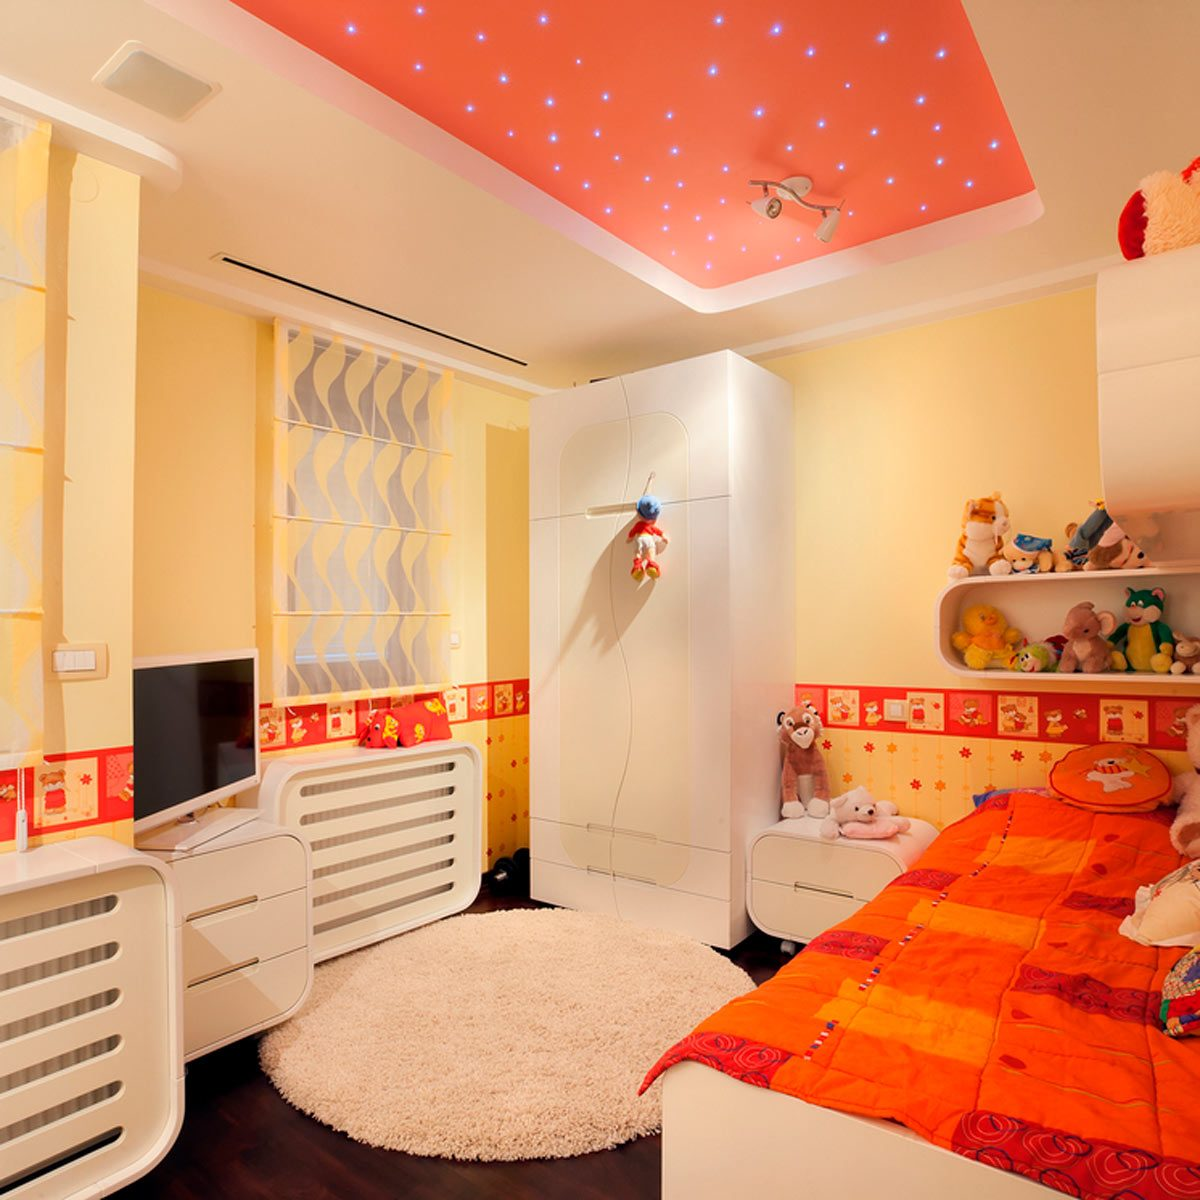 12 Super Cool Kids Room Ideas You Ve Got To See